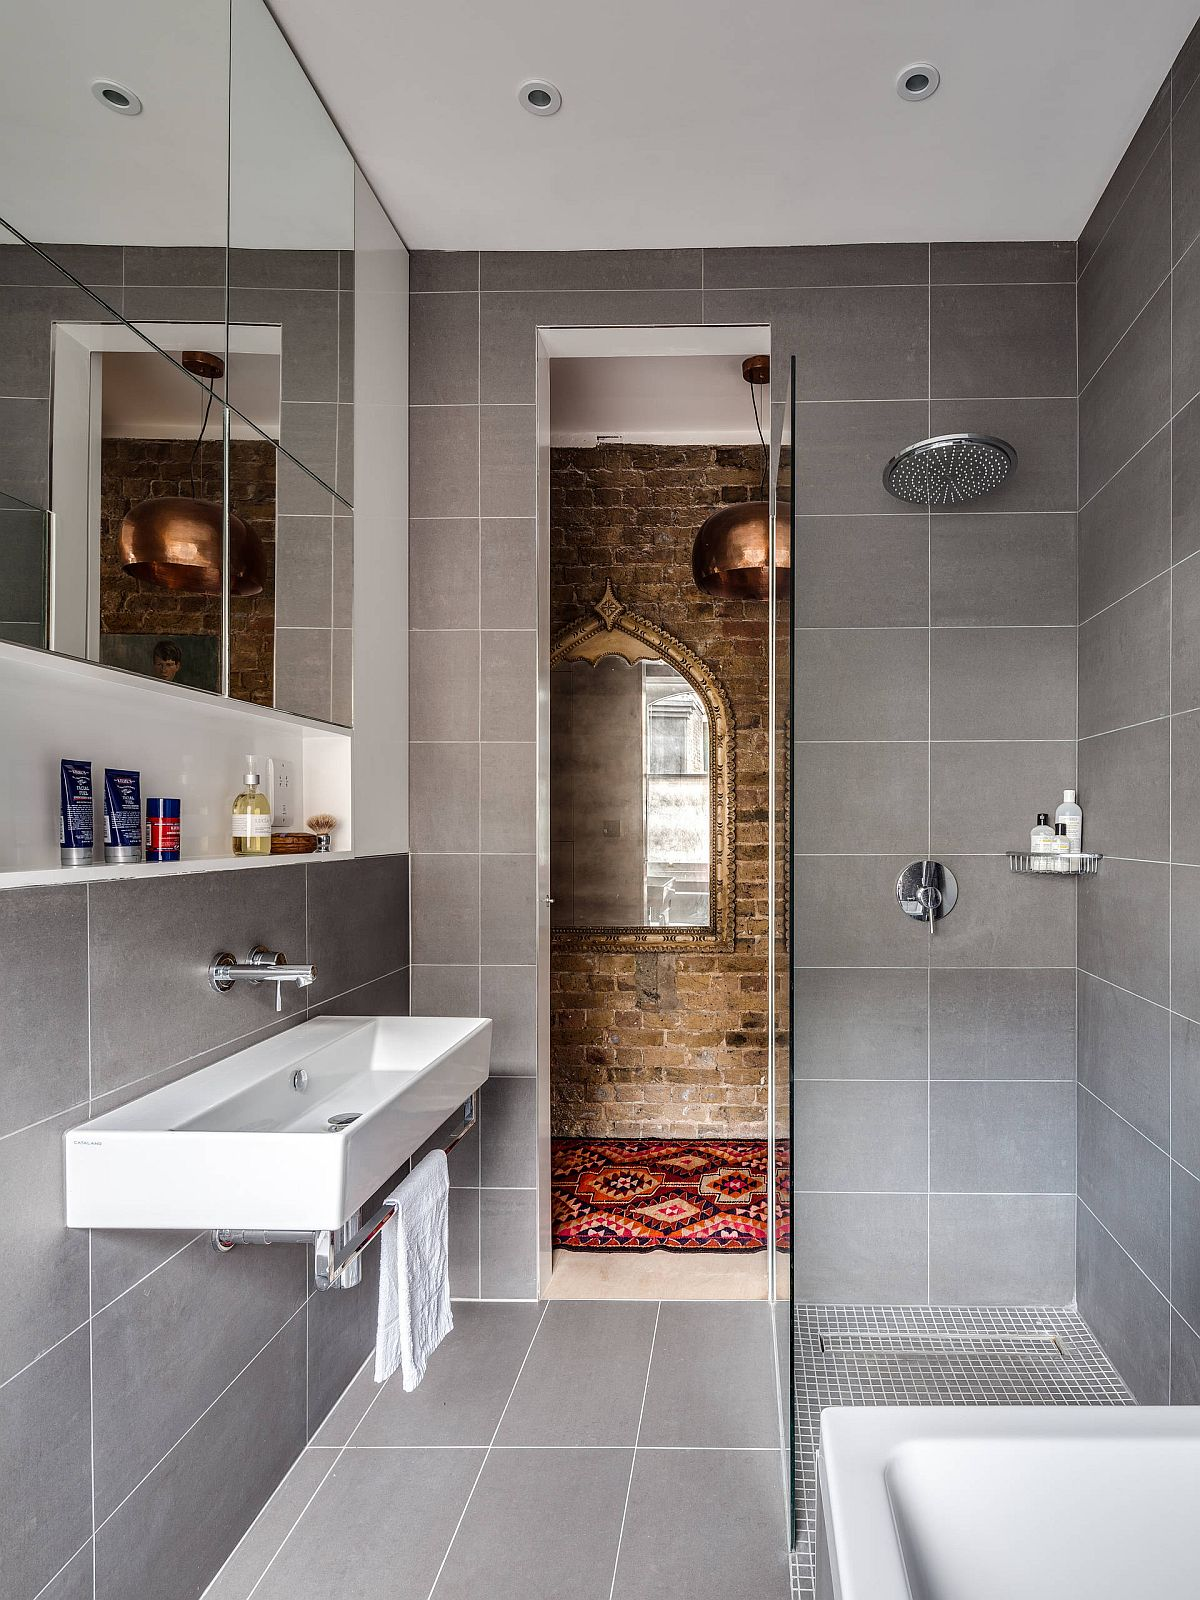 Small Gray Bathroom Ideas: A Balance Between Style and ... on Small Space Small Bathroom Ideas Uk id=49712